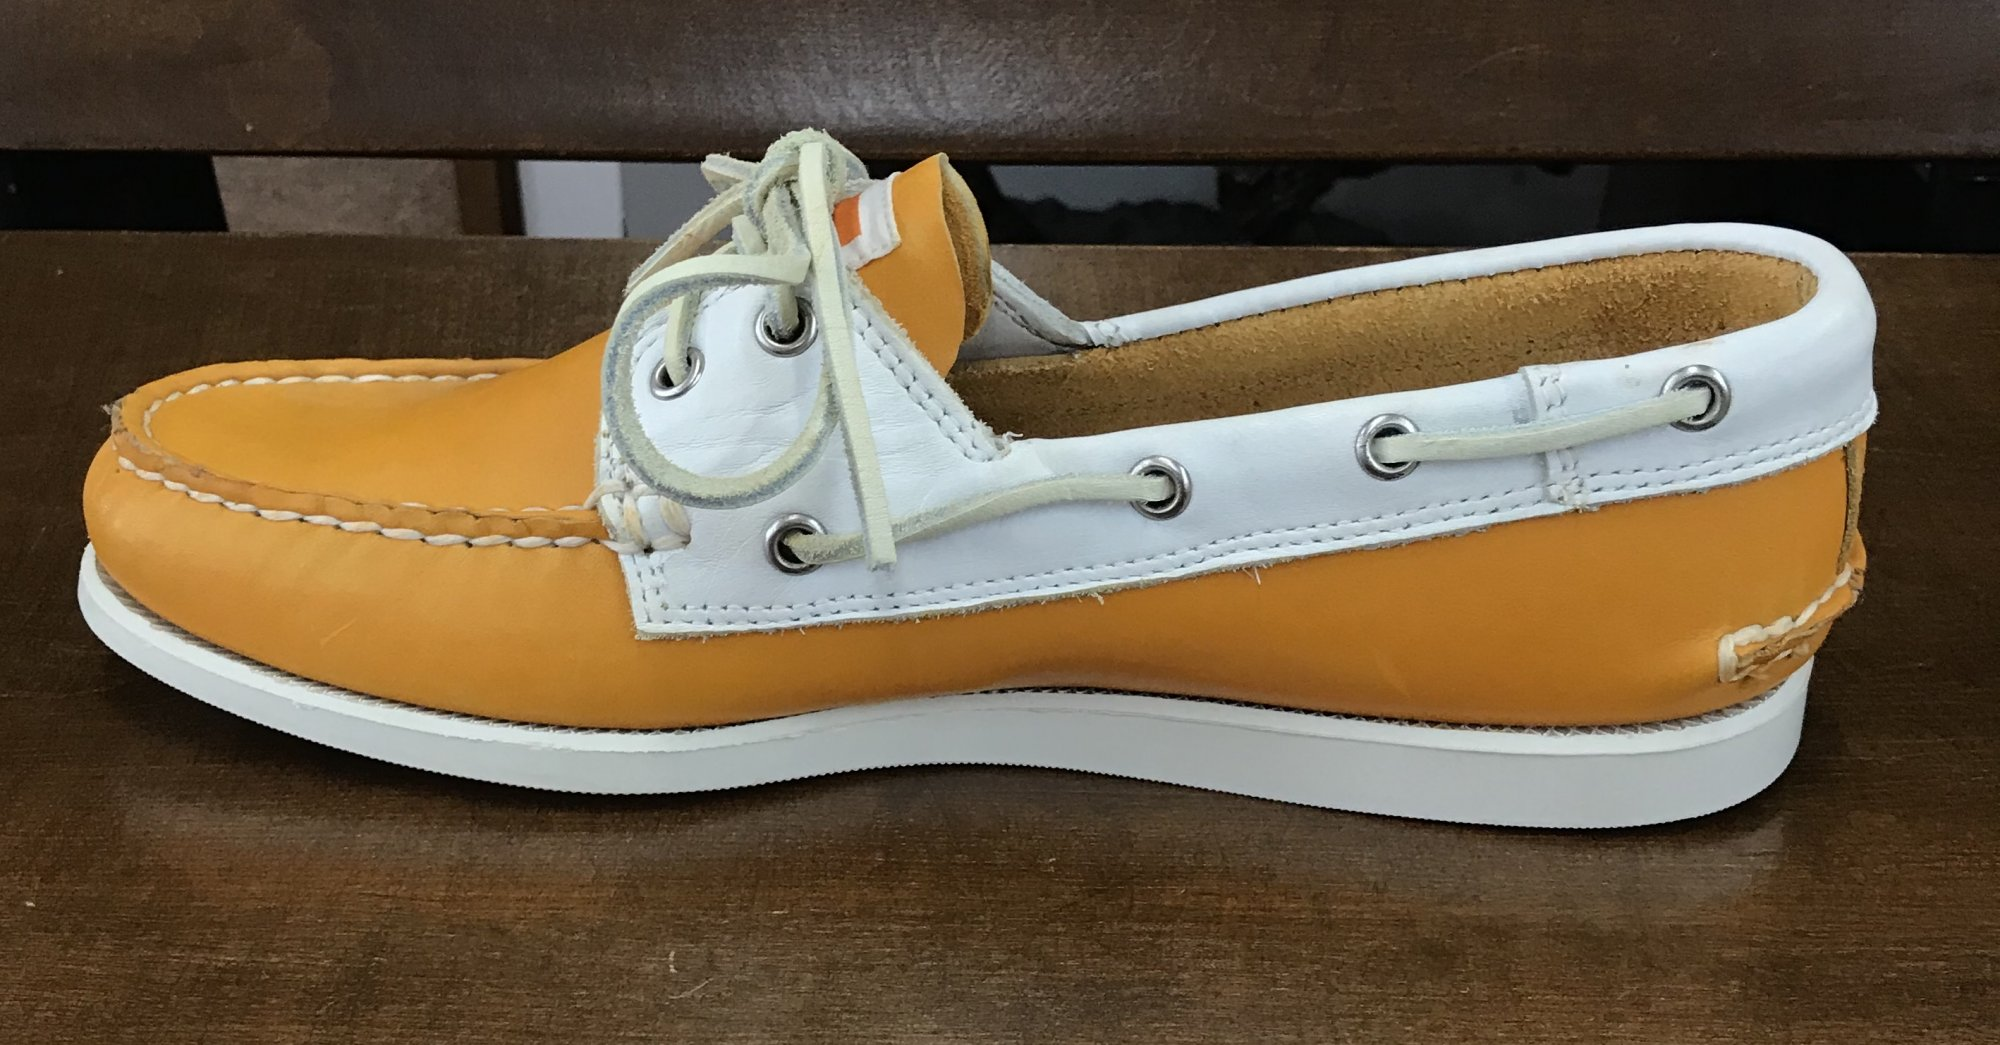 Chant Orange/White UT Shoe